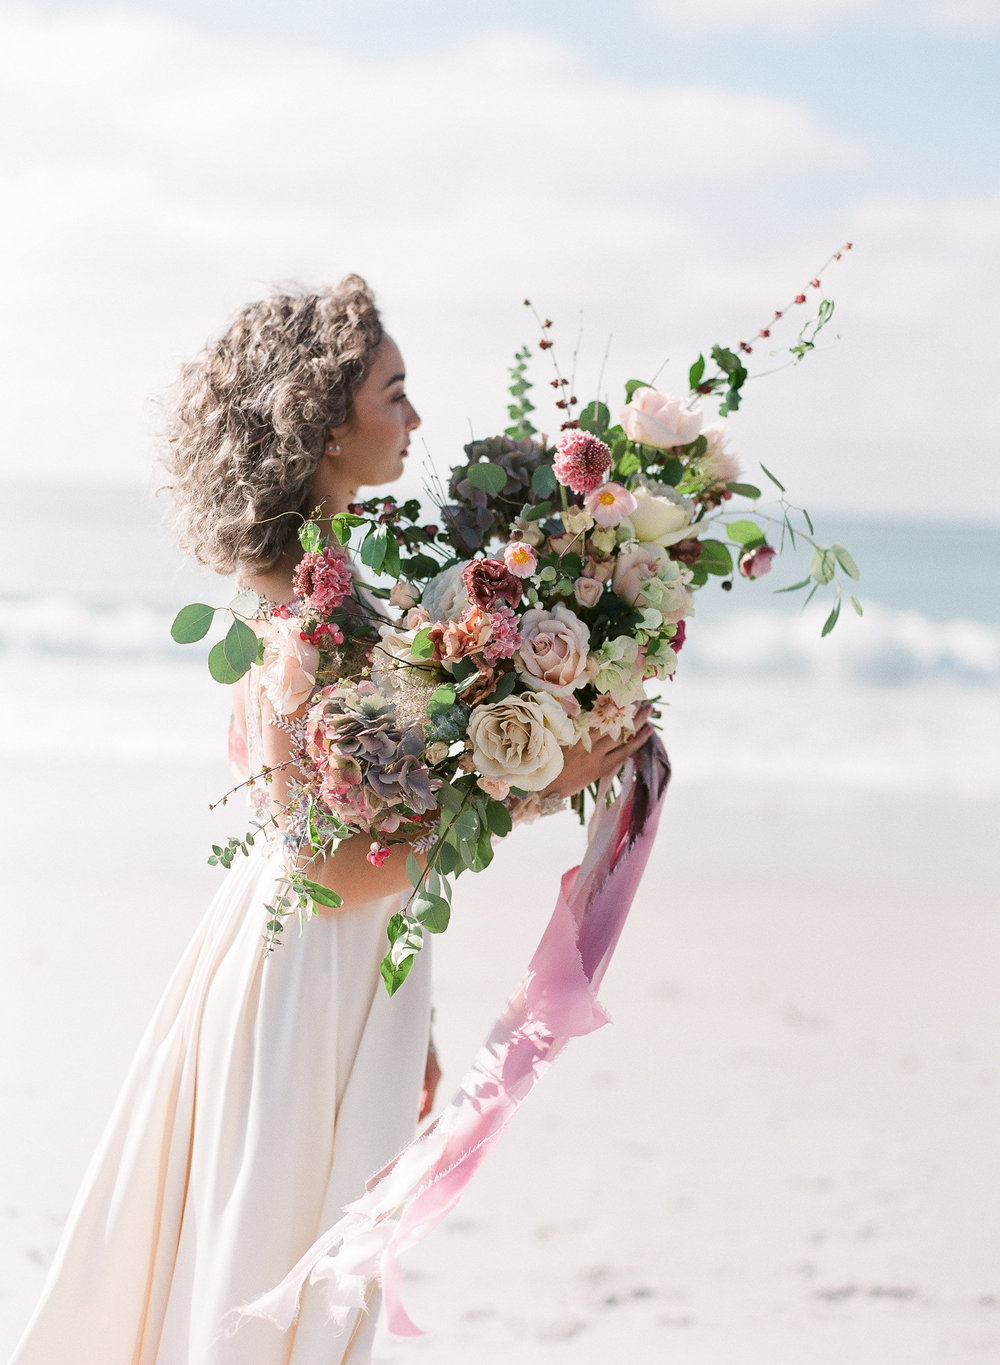 Wedding gown and bridal bouquet goals for beach wedding (Photo: Ashley Noelle Edwards)